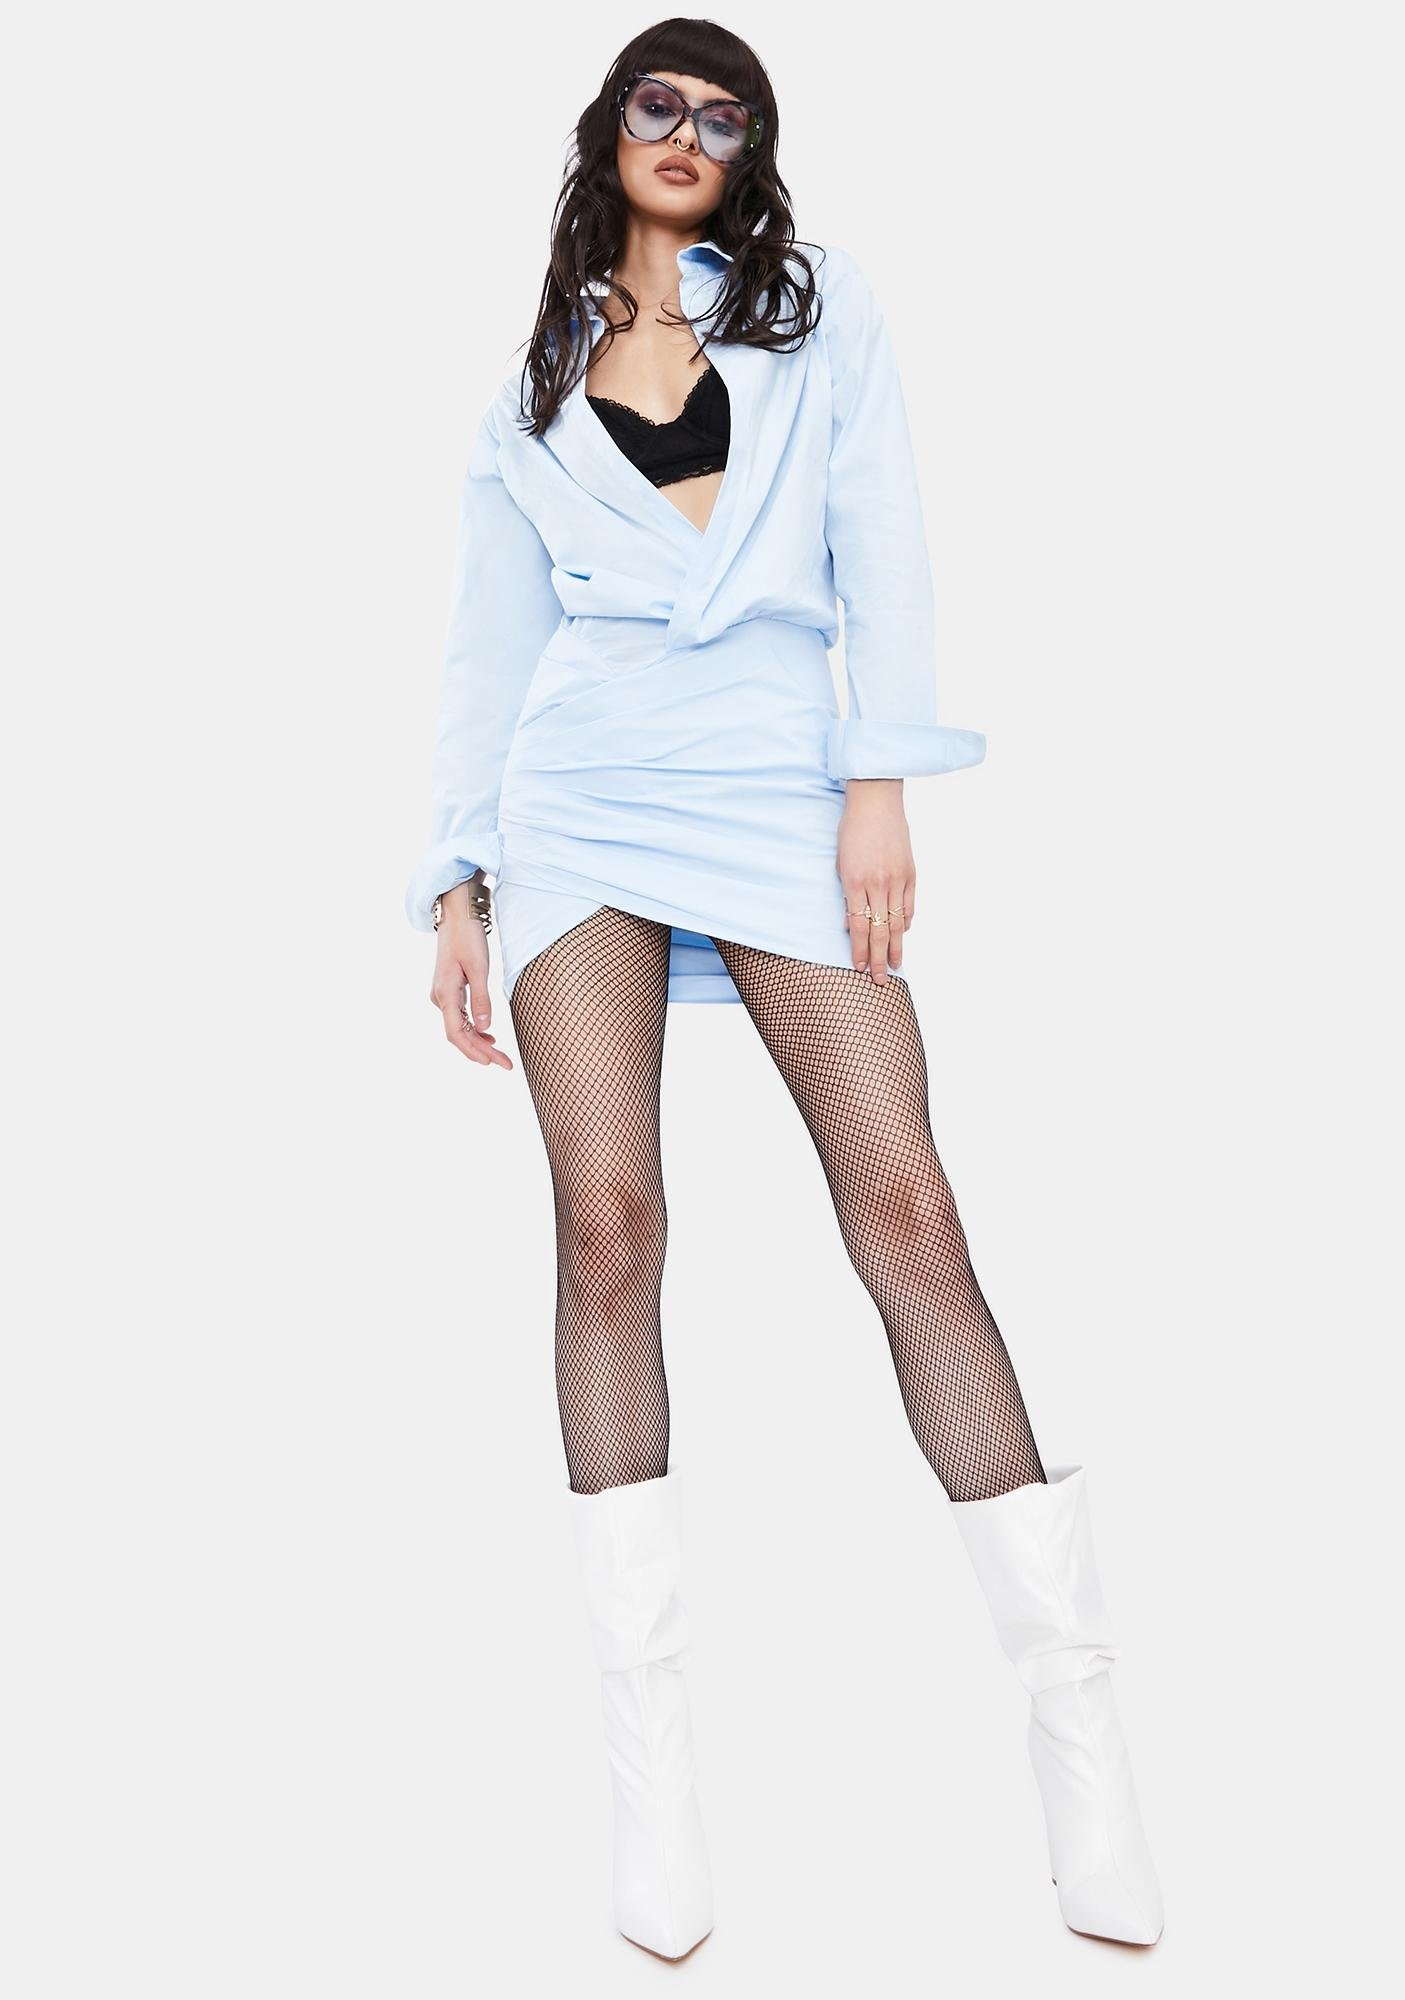 Sky Don't Leave Me Lonely Shirt Dress